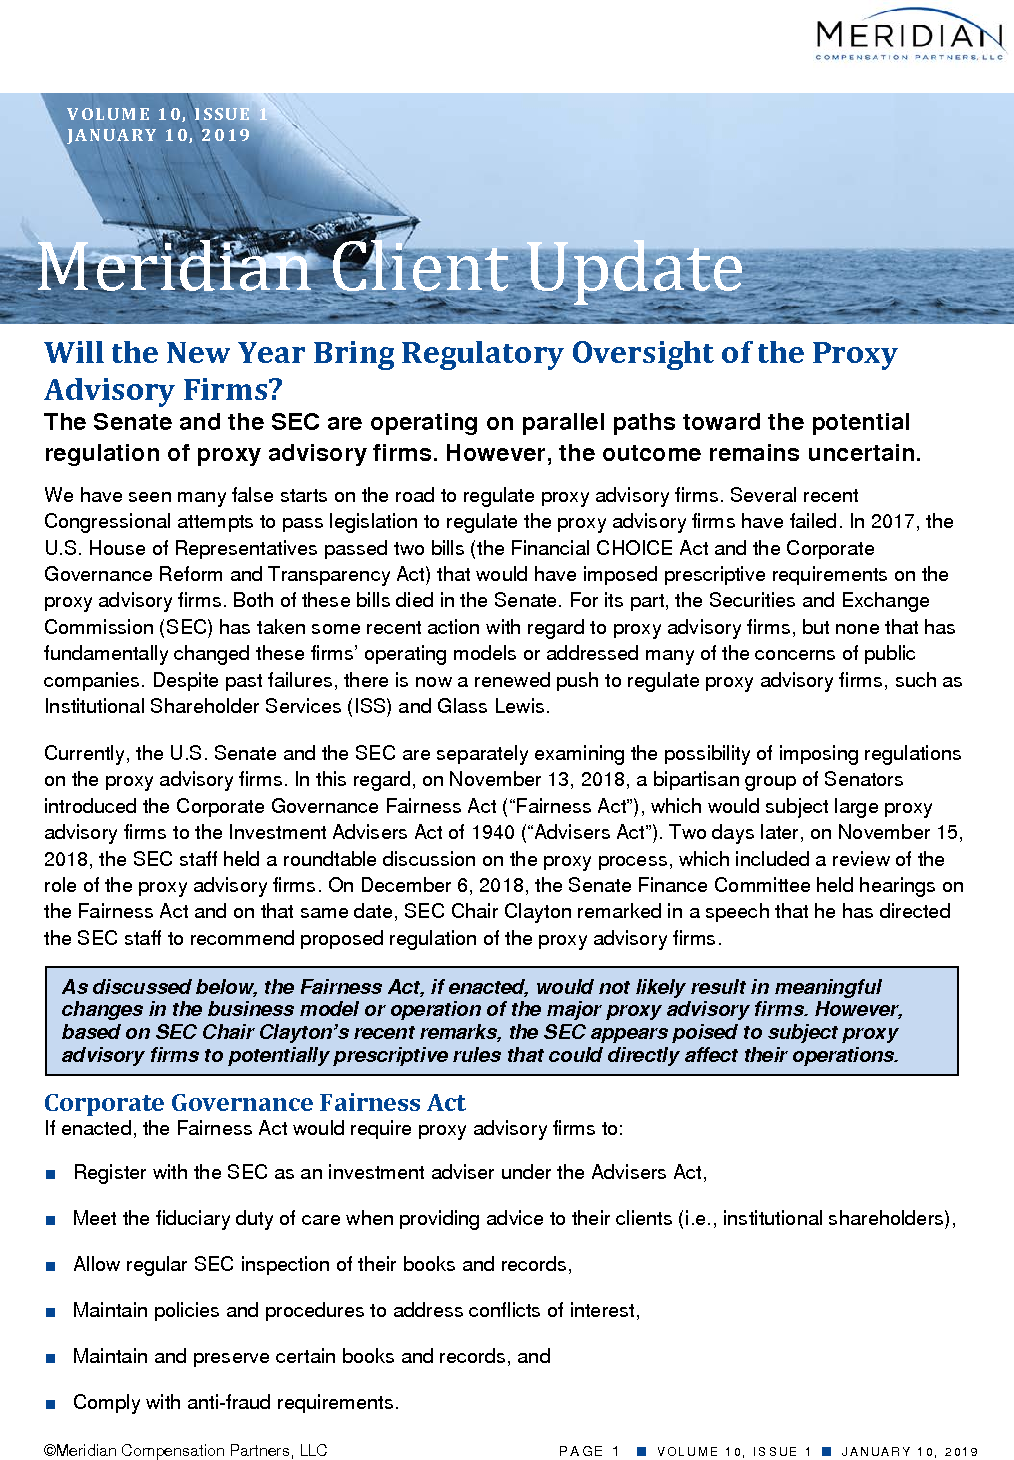 Will the New Year Bring Regulatory Oversight of the Proxy Advisory Firms? (PDF)